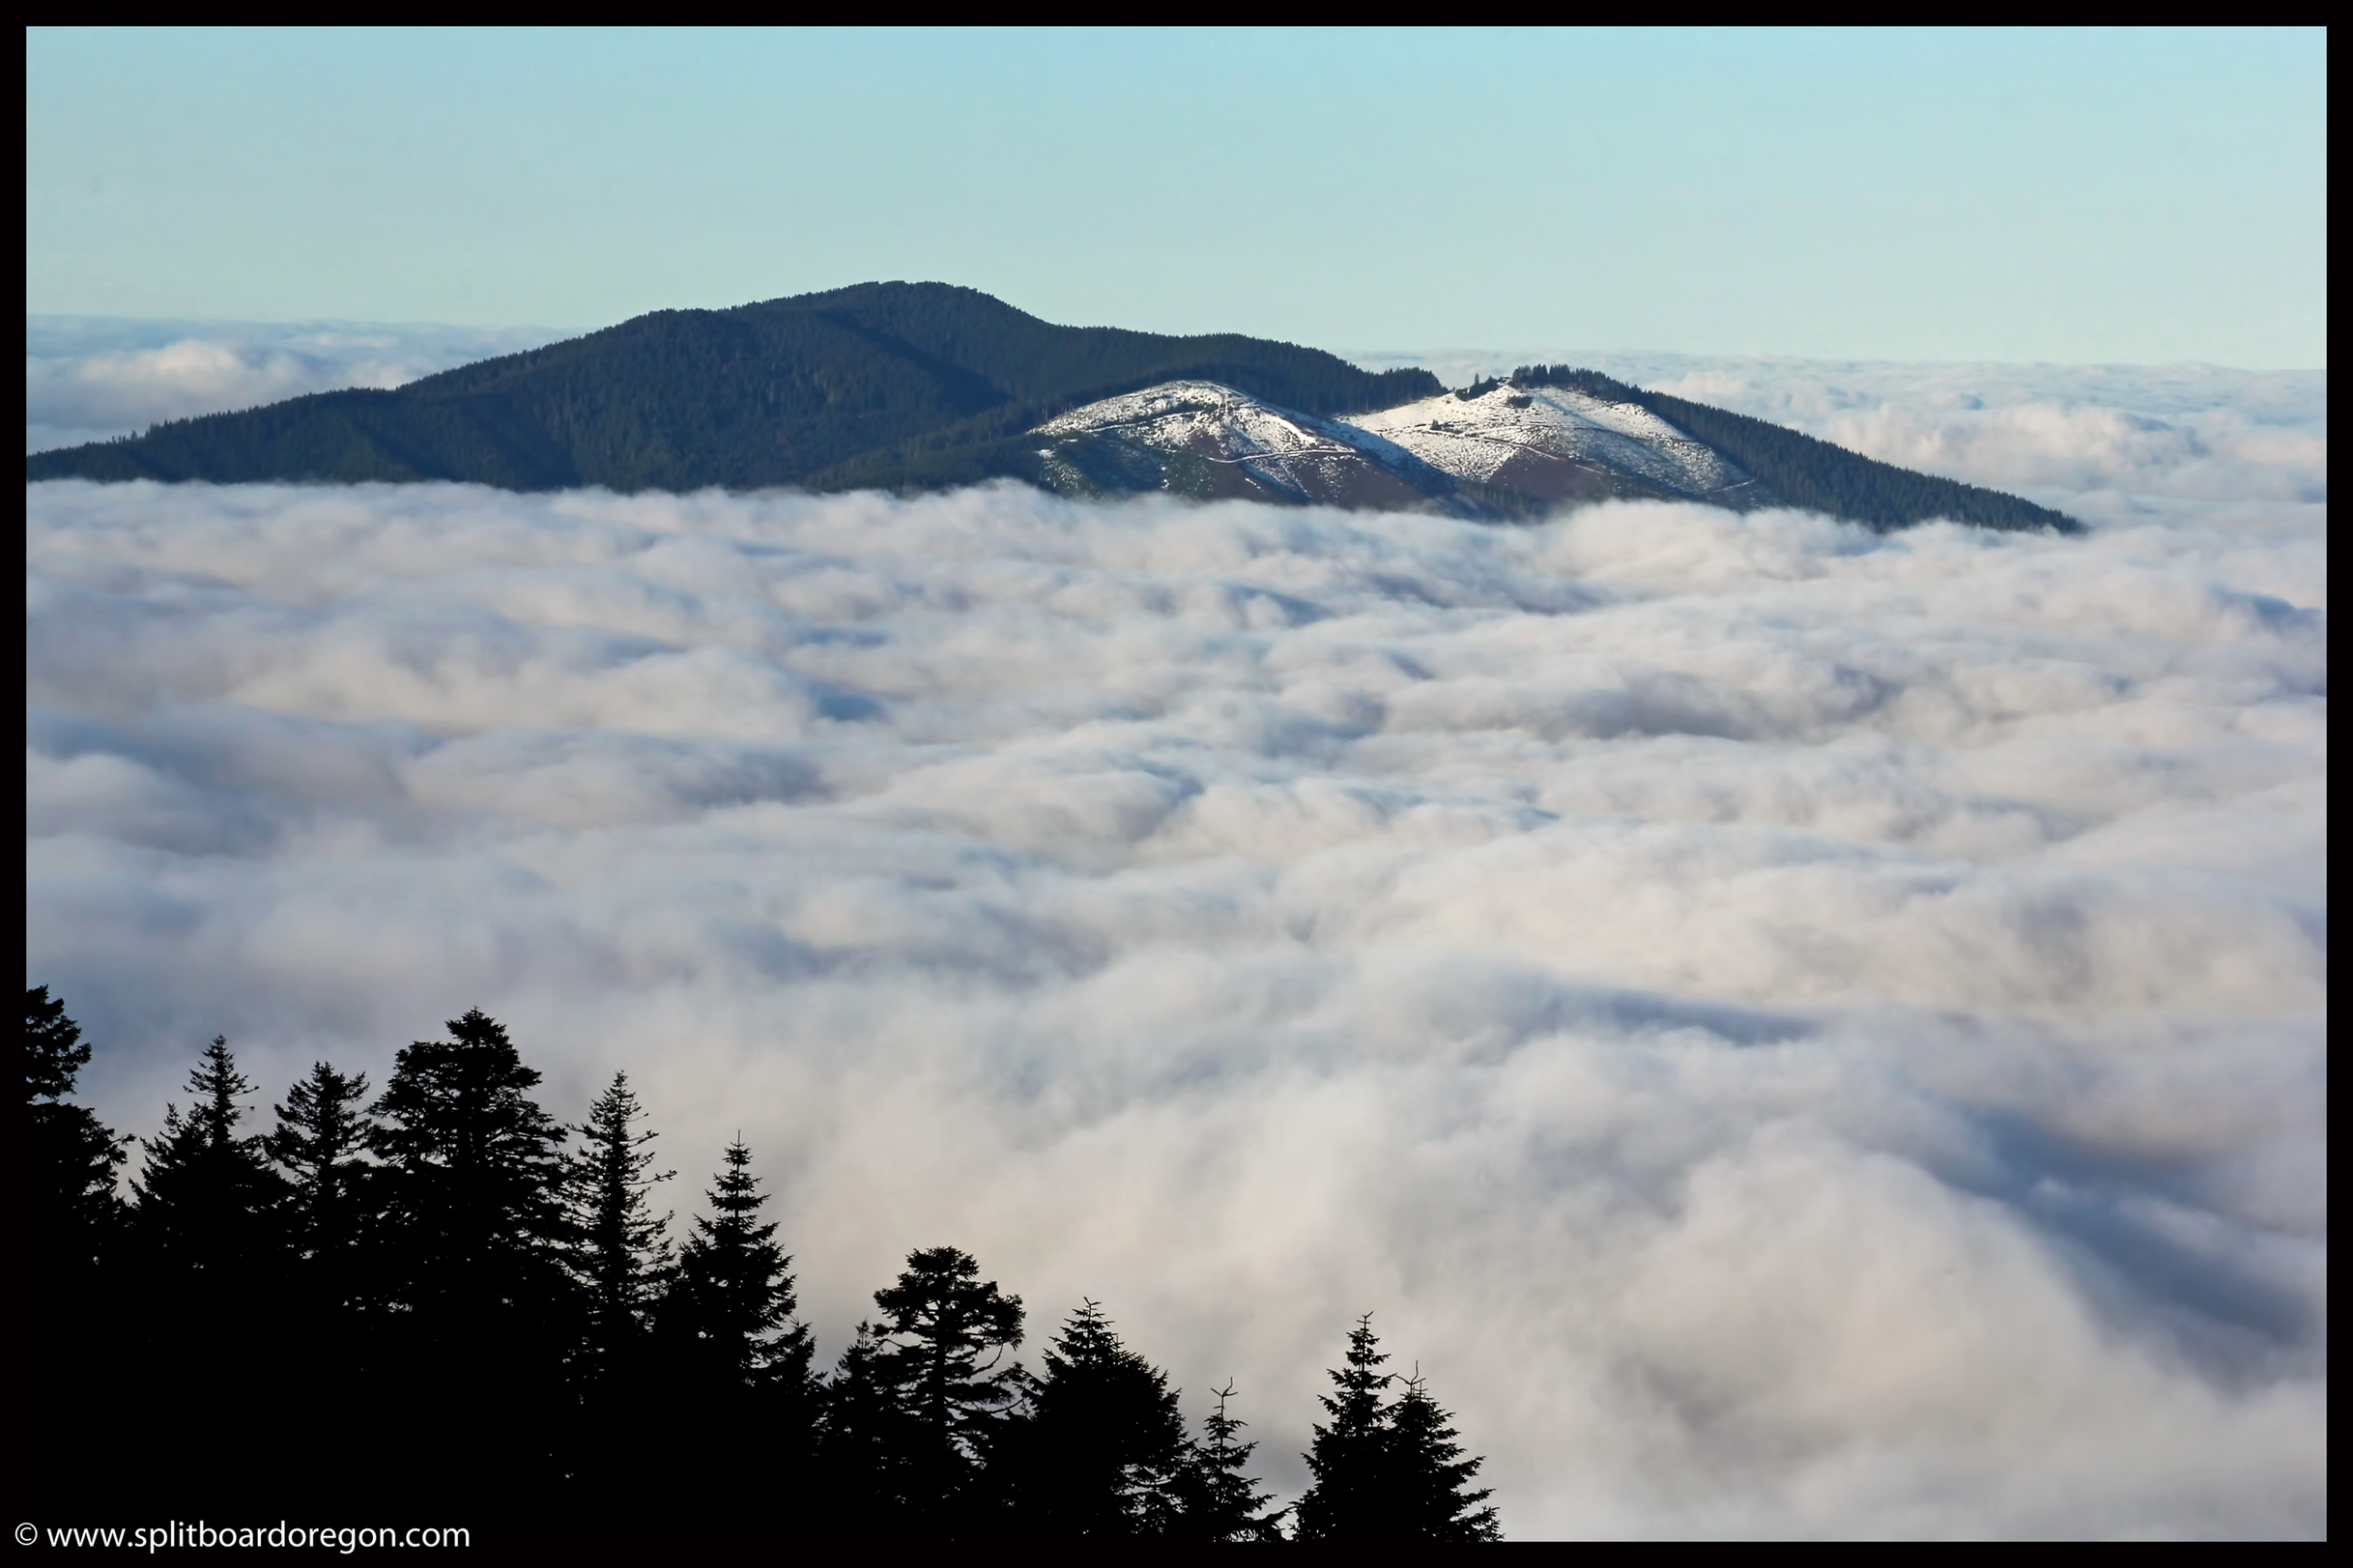 Grass Mountain above the clouds